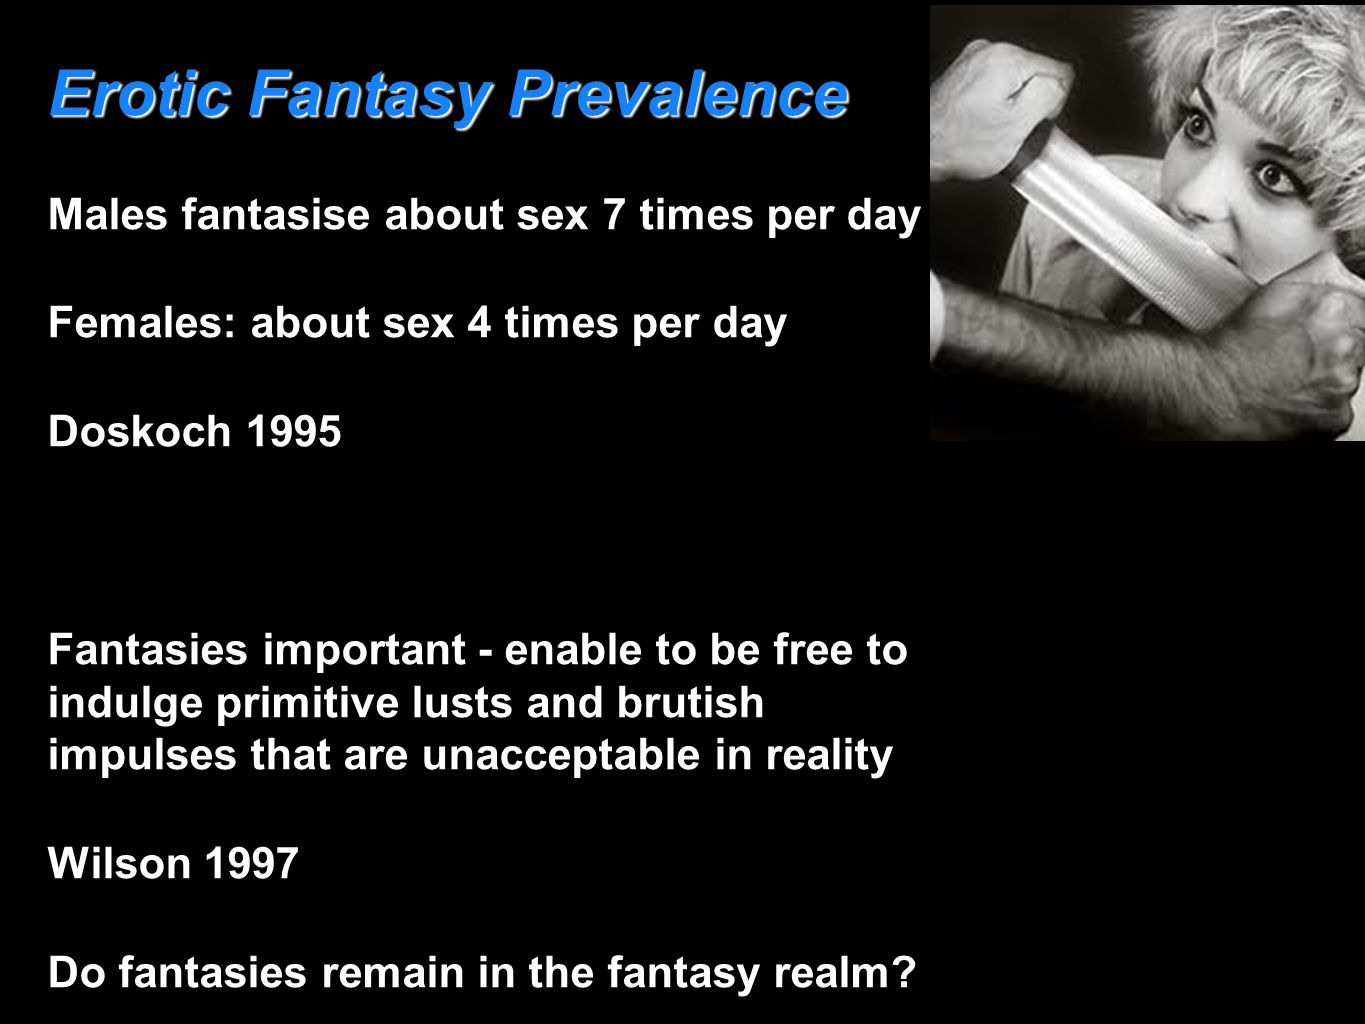 Erotic Fantasy Prevalence Males fantasise about sex 7 times per day Females: about sex 4 times per day Doskoch 1995 Fantasies important - enable to be